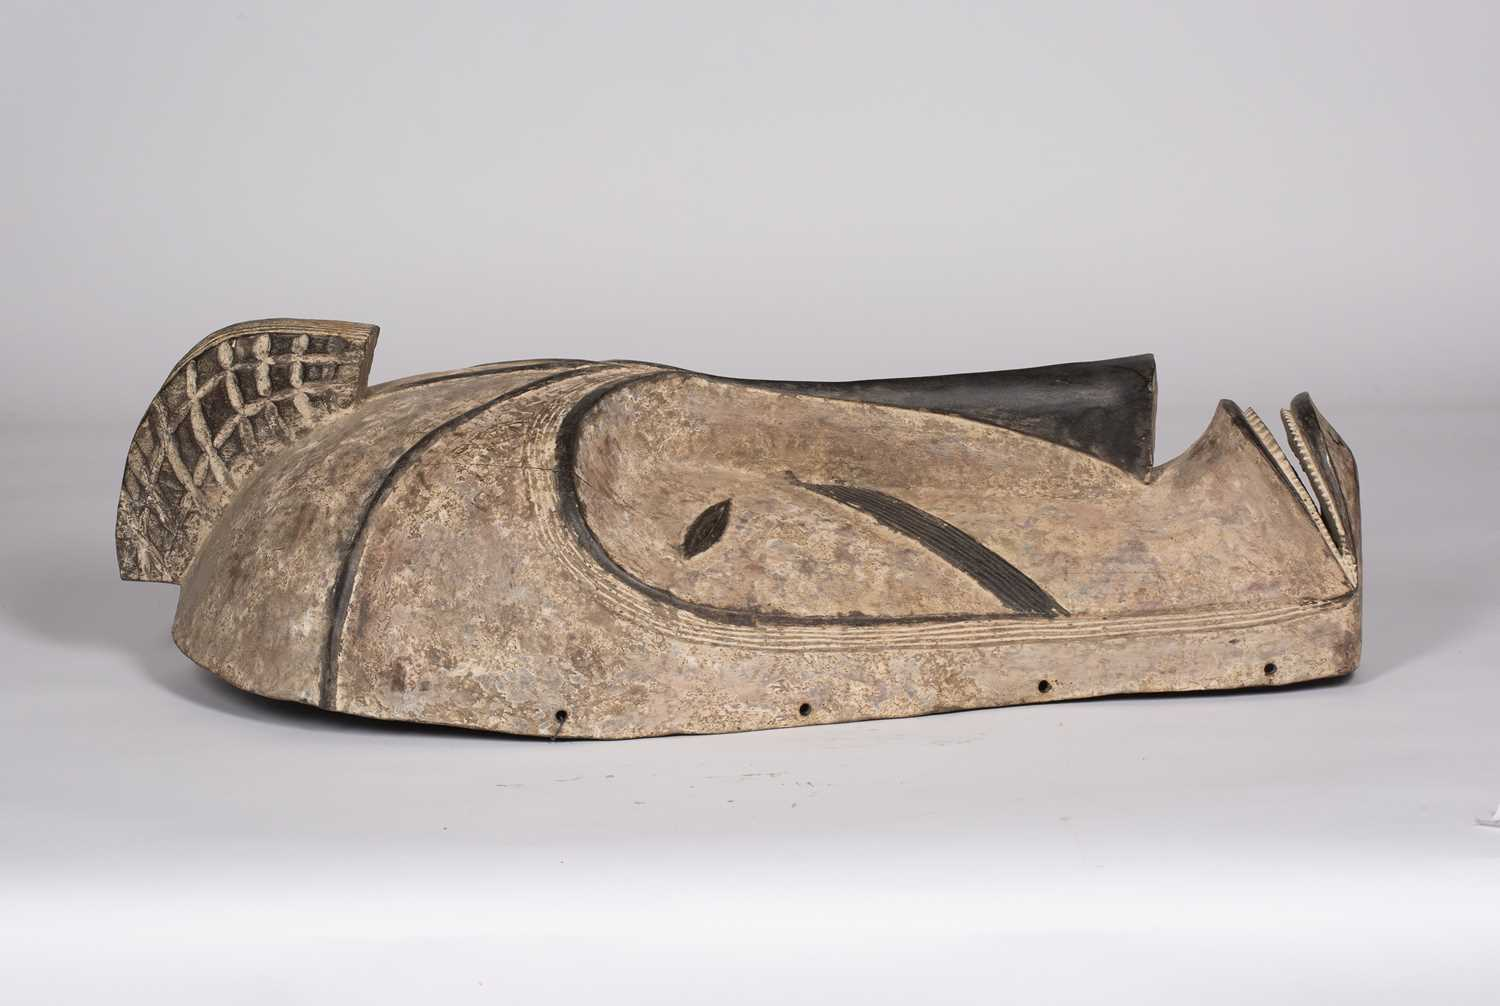 A Fang mask, Gabon, carved wood with incised line marks with black and white pigments, 74cm high - Image 2 of 5